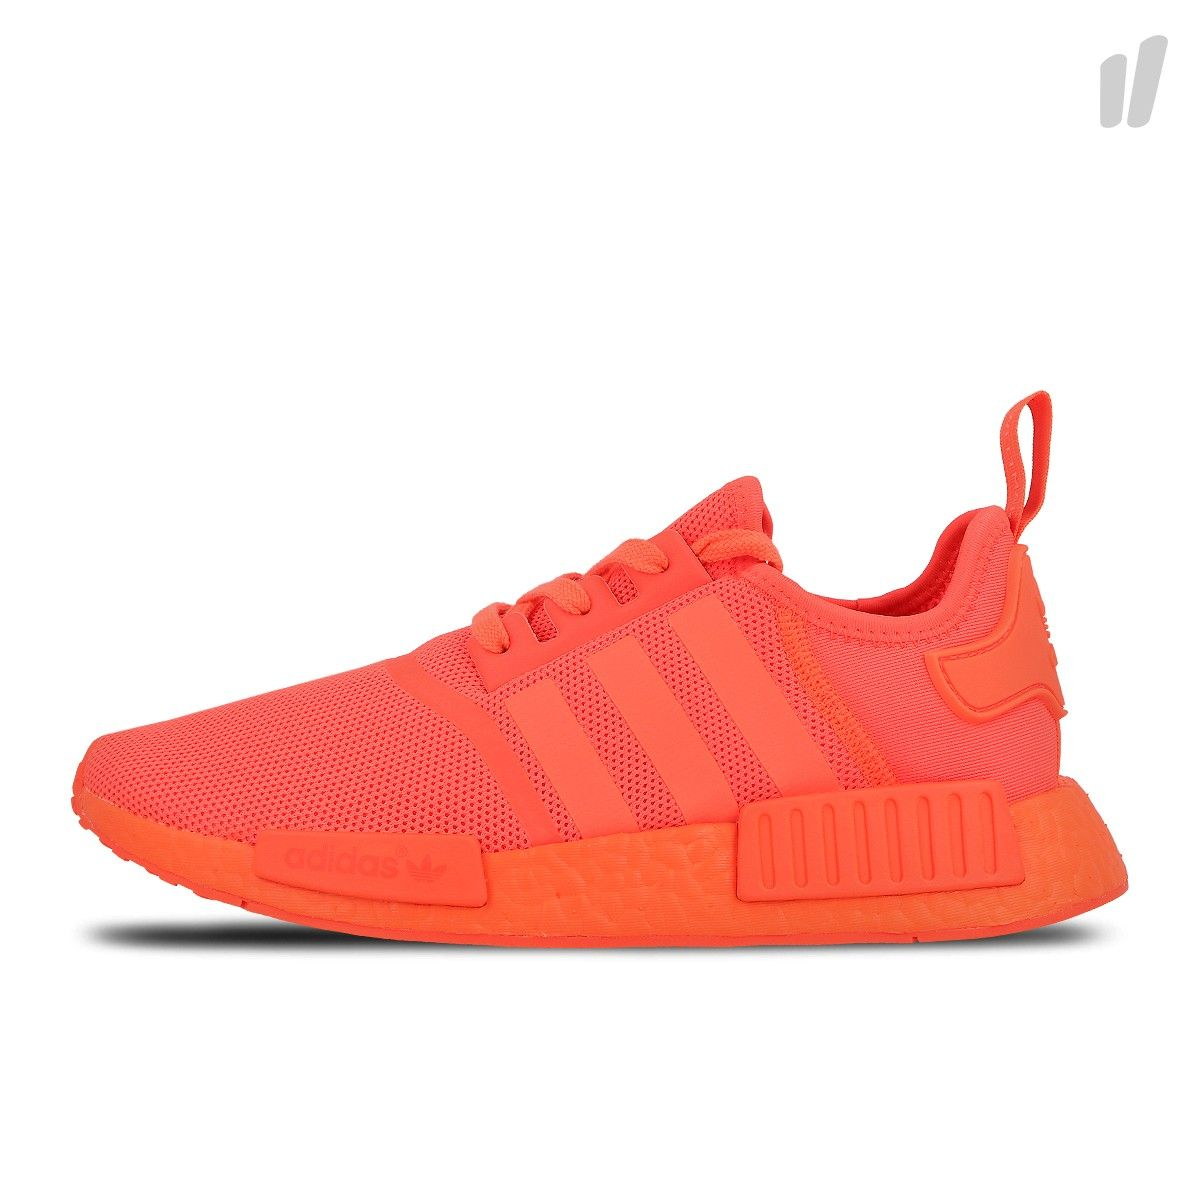 aufstocken. adidas drilling solar red nmd ist overstock nike - sneakers